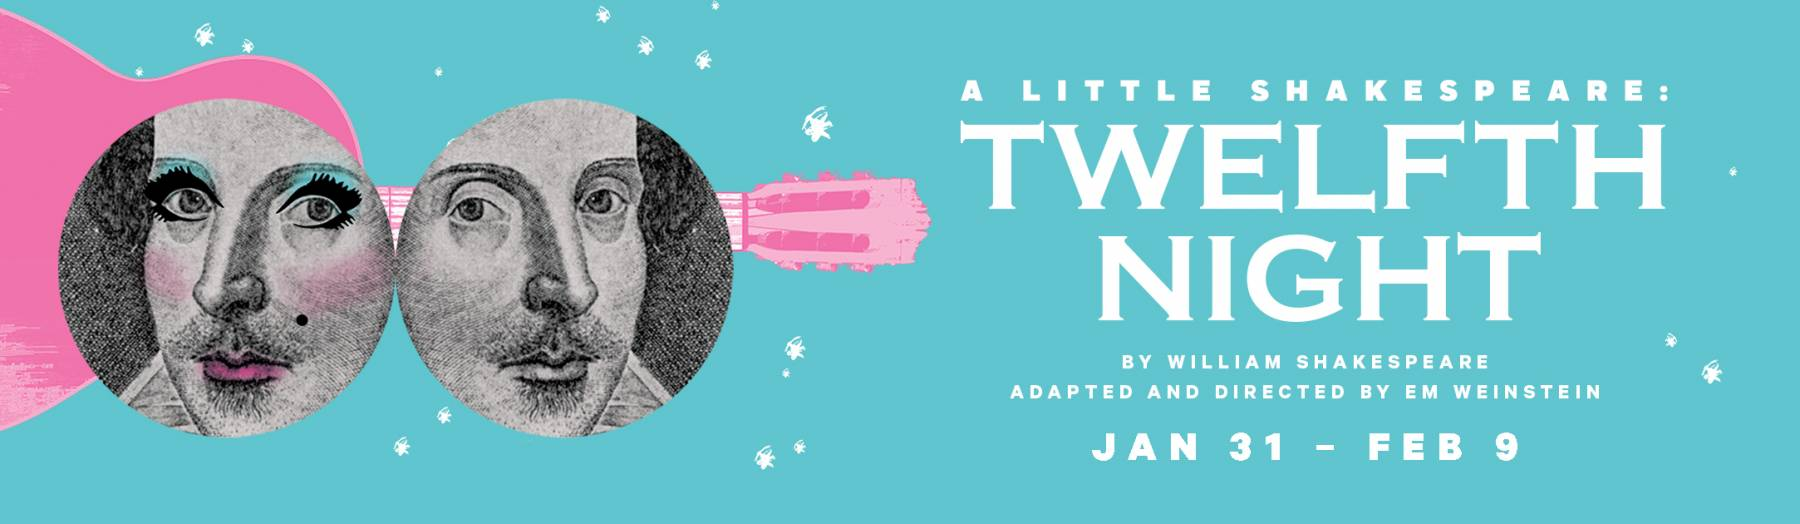 A LITTLE SHAKESPEARE: TWELFTH NIGHT, By William Shakespeare, Adapted and Directed by Em Weinstein, Jan 31-Feb 9